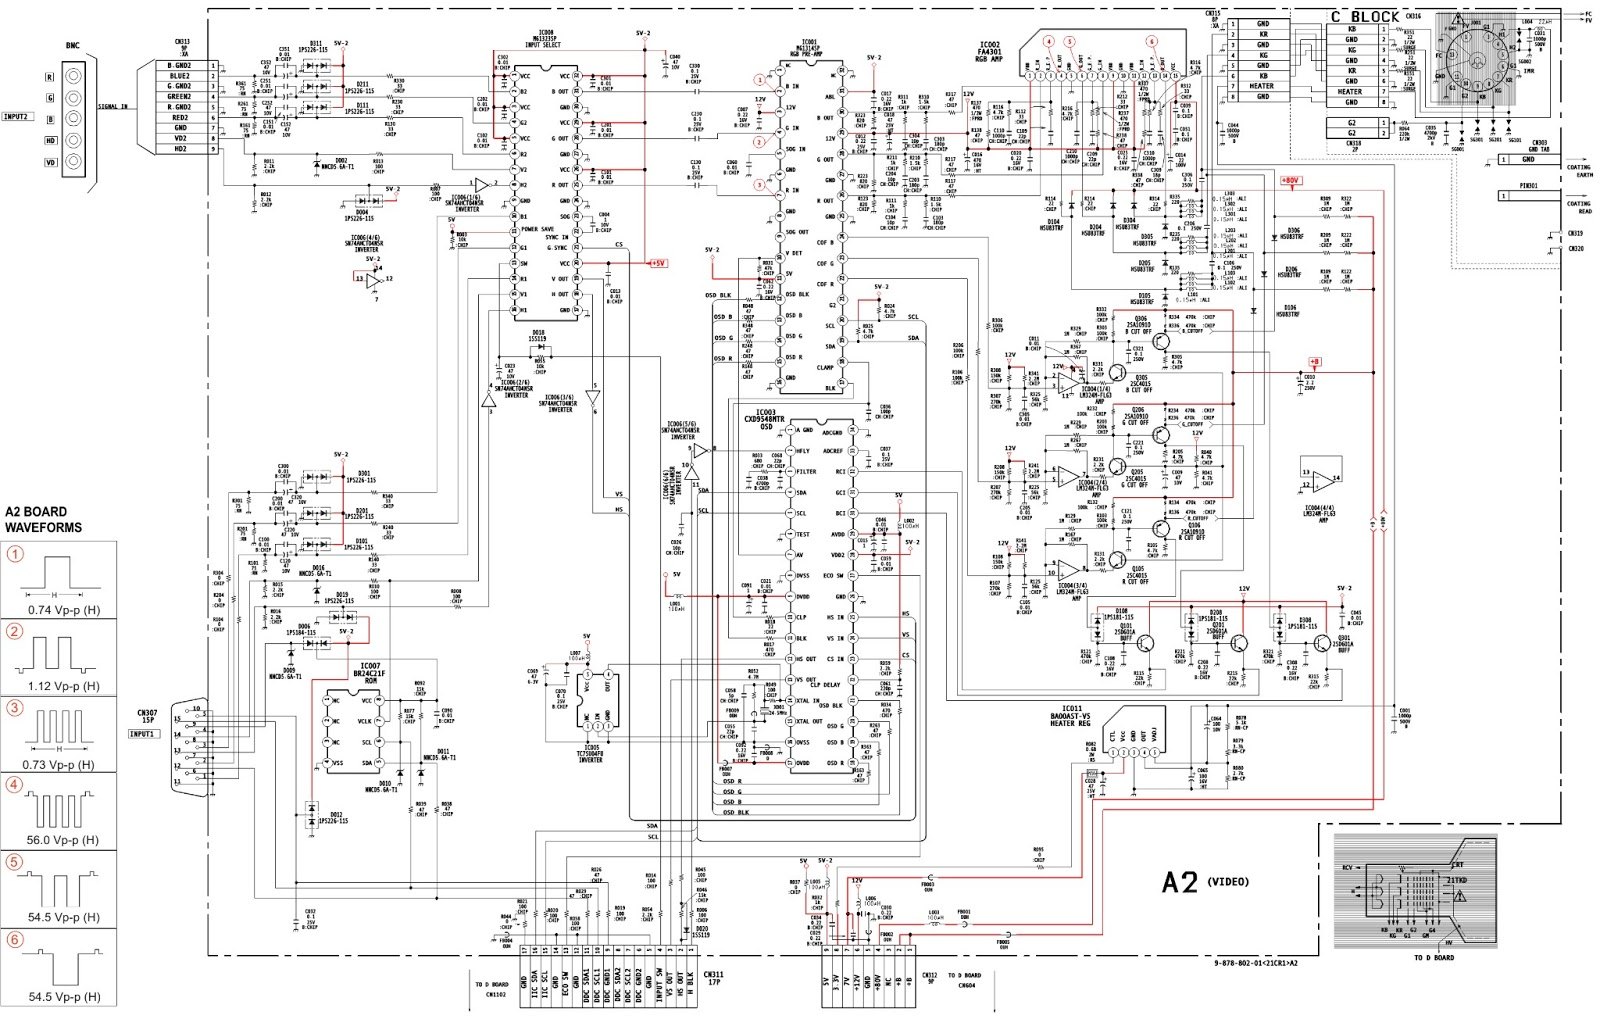 hight resolution of xbox 360 schematics diagram wiring diagram for you xbox one headset wiring diagram xbox controller wiring diagram